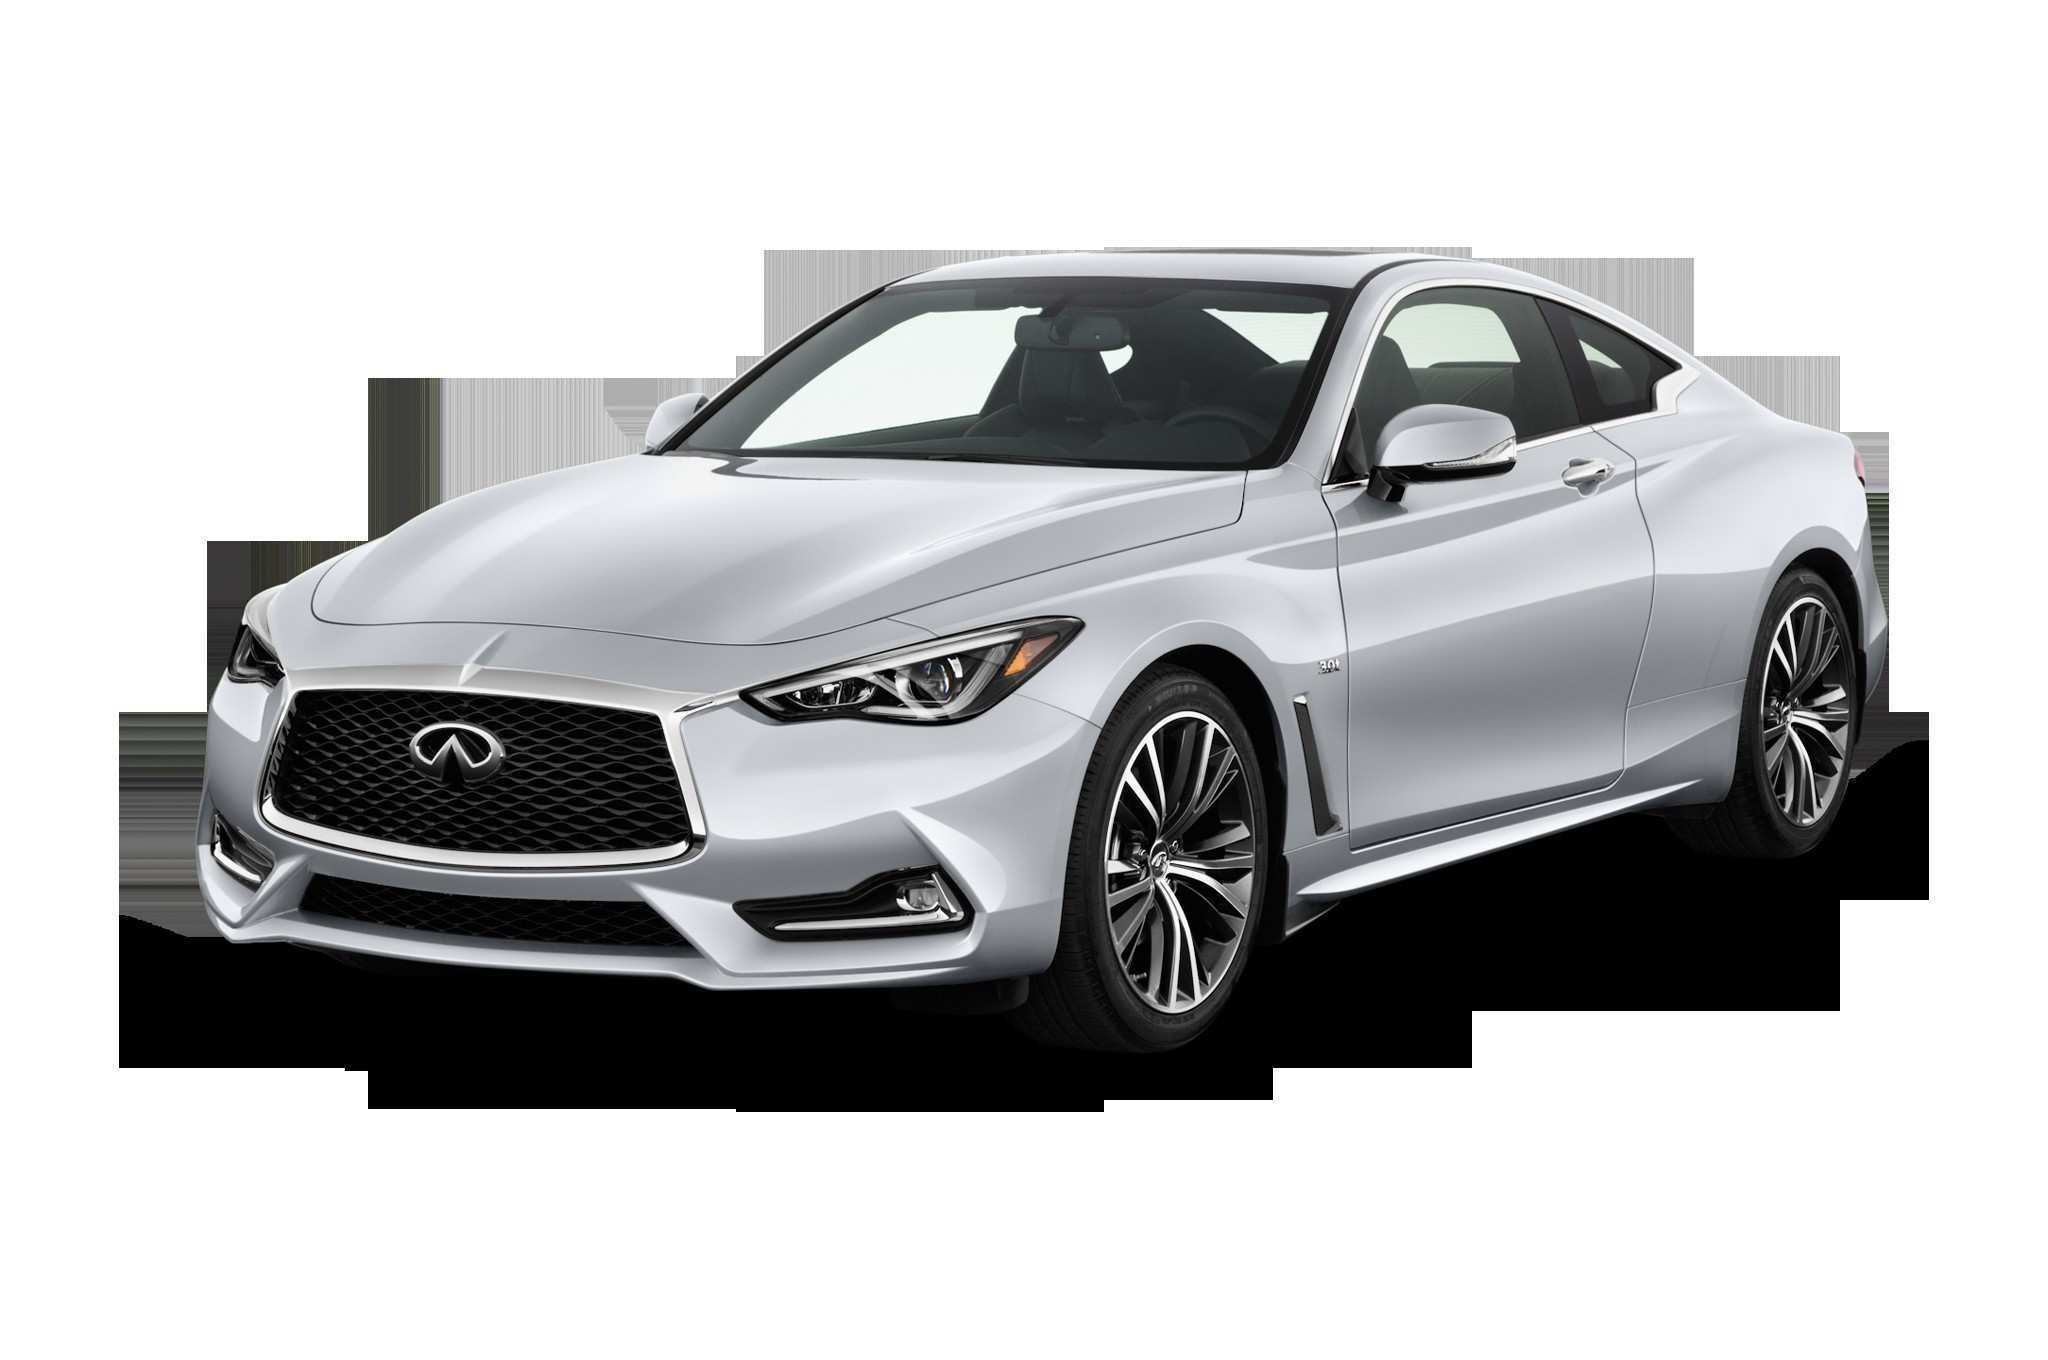 52 The Best 2019 Infiniti Q60 Coupe Convertible Style